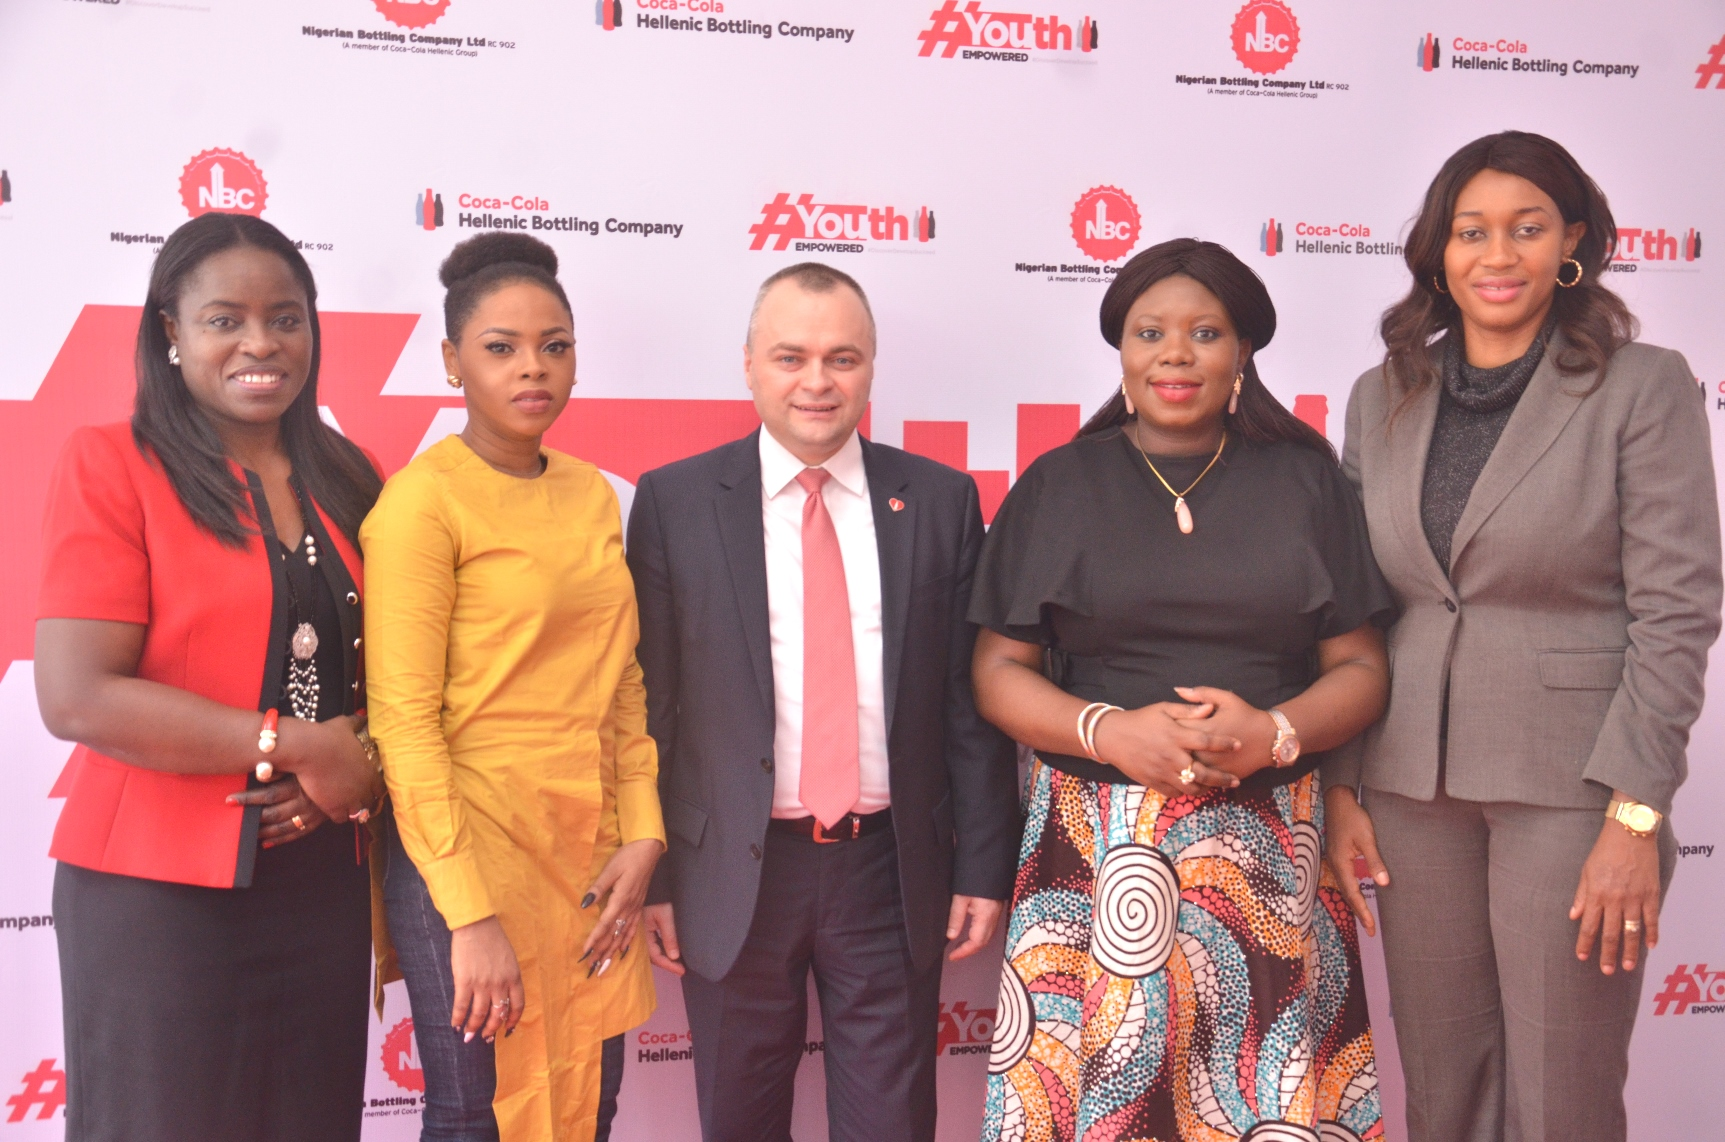 Pic 1 L-R: Mrs. Sade Morgan, Director, Legal, Public Affairs and Communication, Nigerian Bottling Company Limited (NBC); Chidinma Ekile, Coke Studio Celebrity Artiste; Mr. Dragos Ion, representing the Managing Director, NBC, Mr. George Polymenakos; Mrs. Toyosi Akerele-Ogunsiji, Founder, Rise Networks and Mrs. Amaka Onyemelukwe, Public Affairs and Communications Manager, Coca-Cola Nigeria during the Grand Launch of the Nigerian Bottling Company Limited 'Youth Empowered Initiative' held in Lagos yesterday.